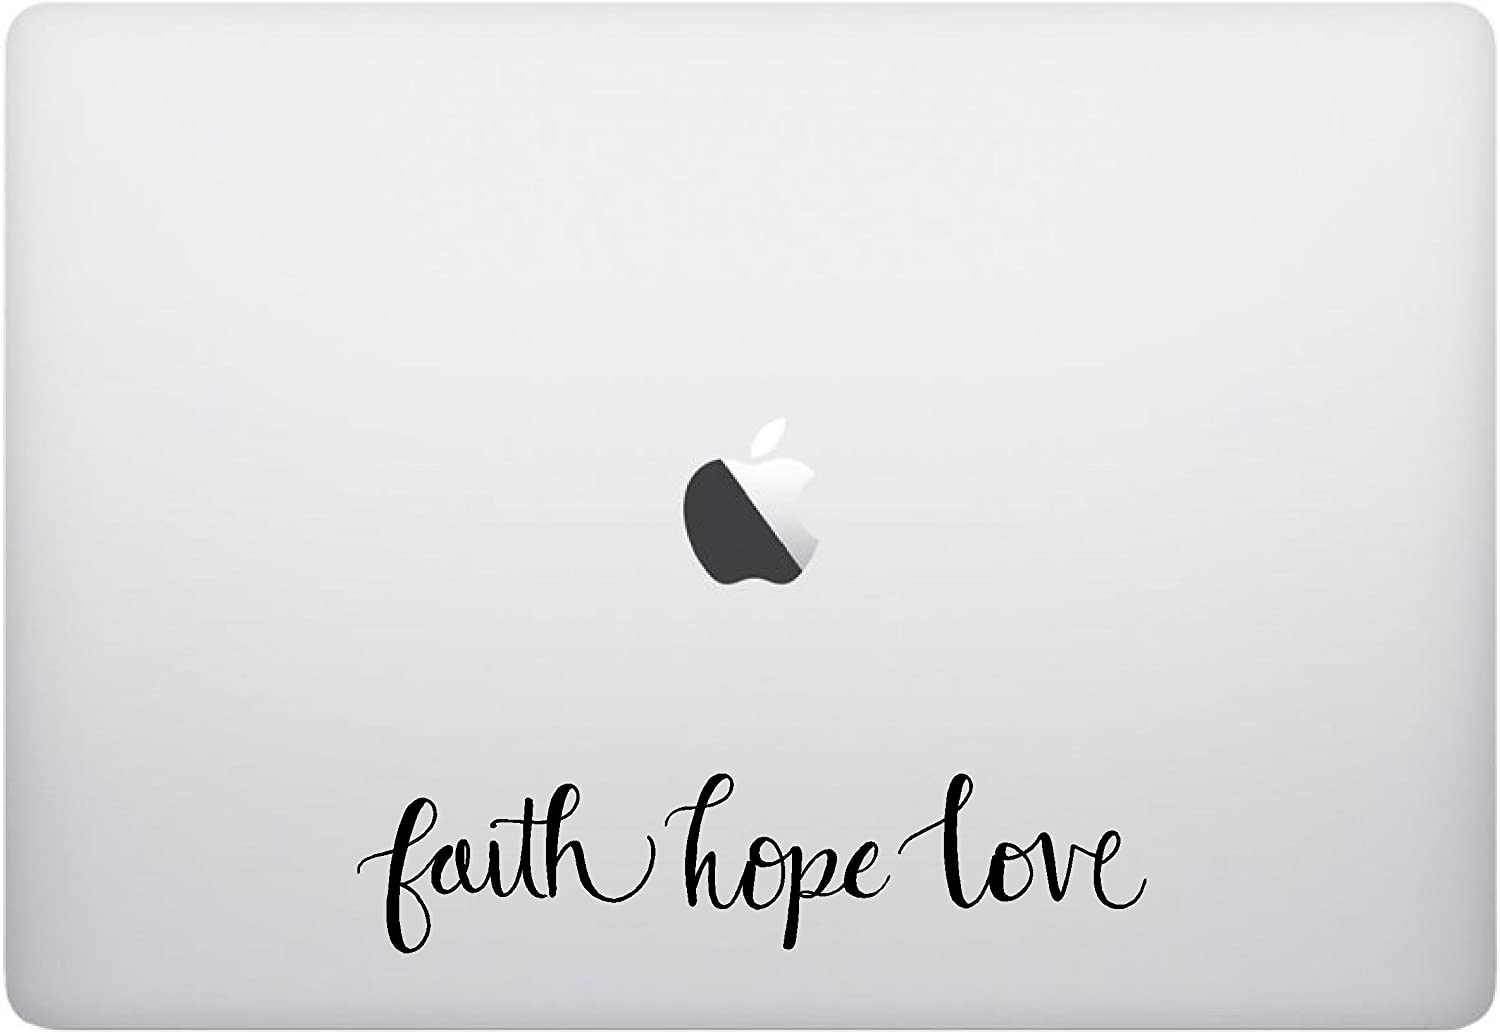 Laptop Sticker Decal - Faith Hope Love - Matte Black Skins Stickers